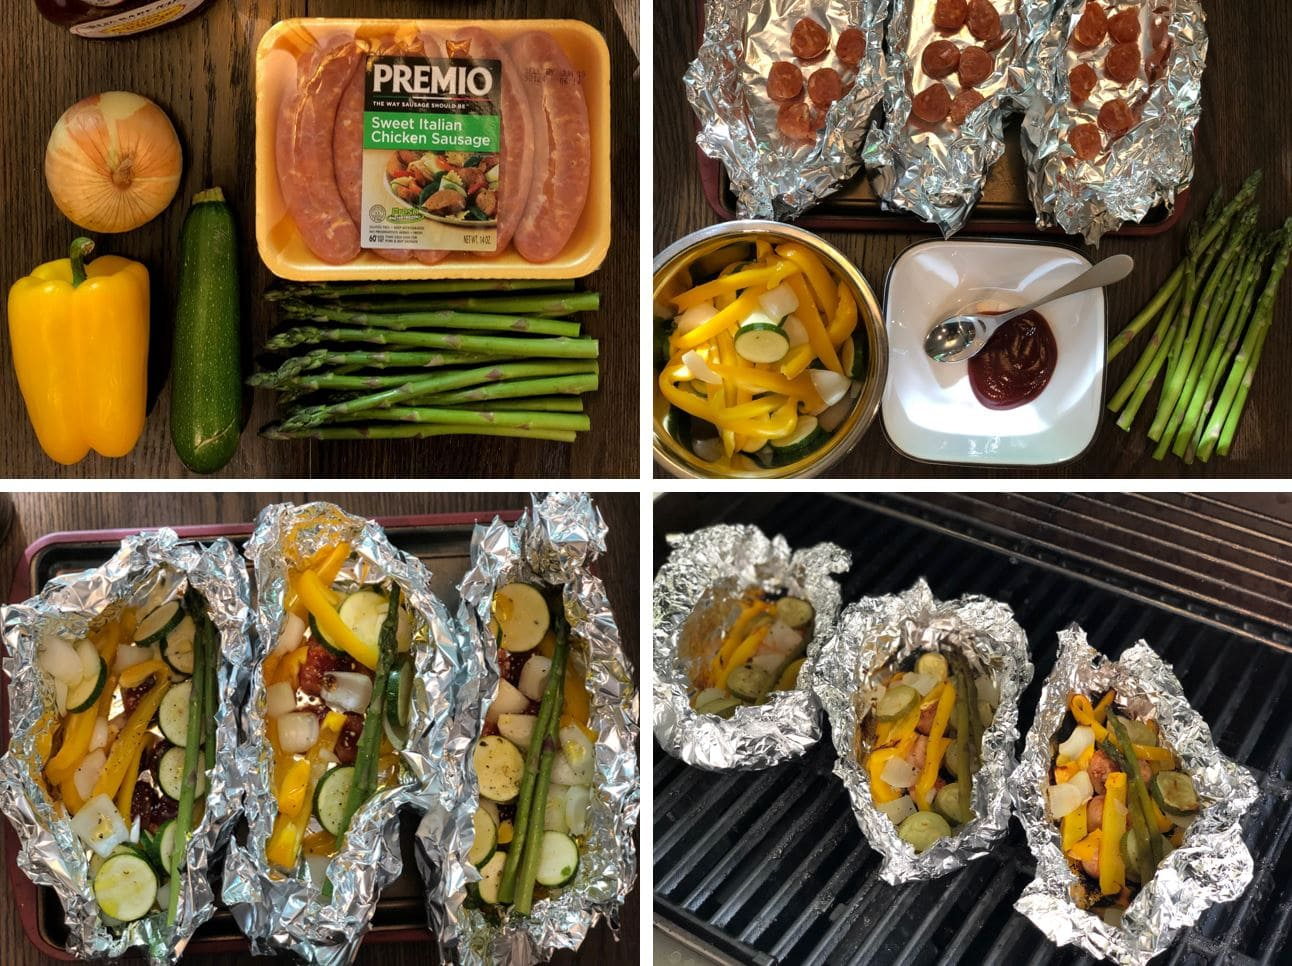 Grilled Barbecue Chicken Sausage and Vegetable in Foil Step by Step Recipe